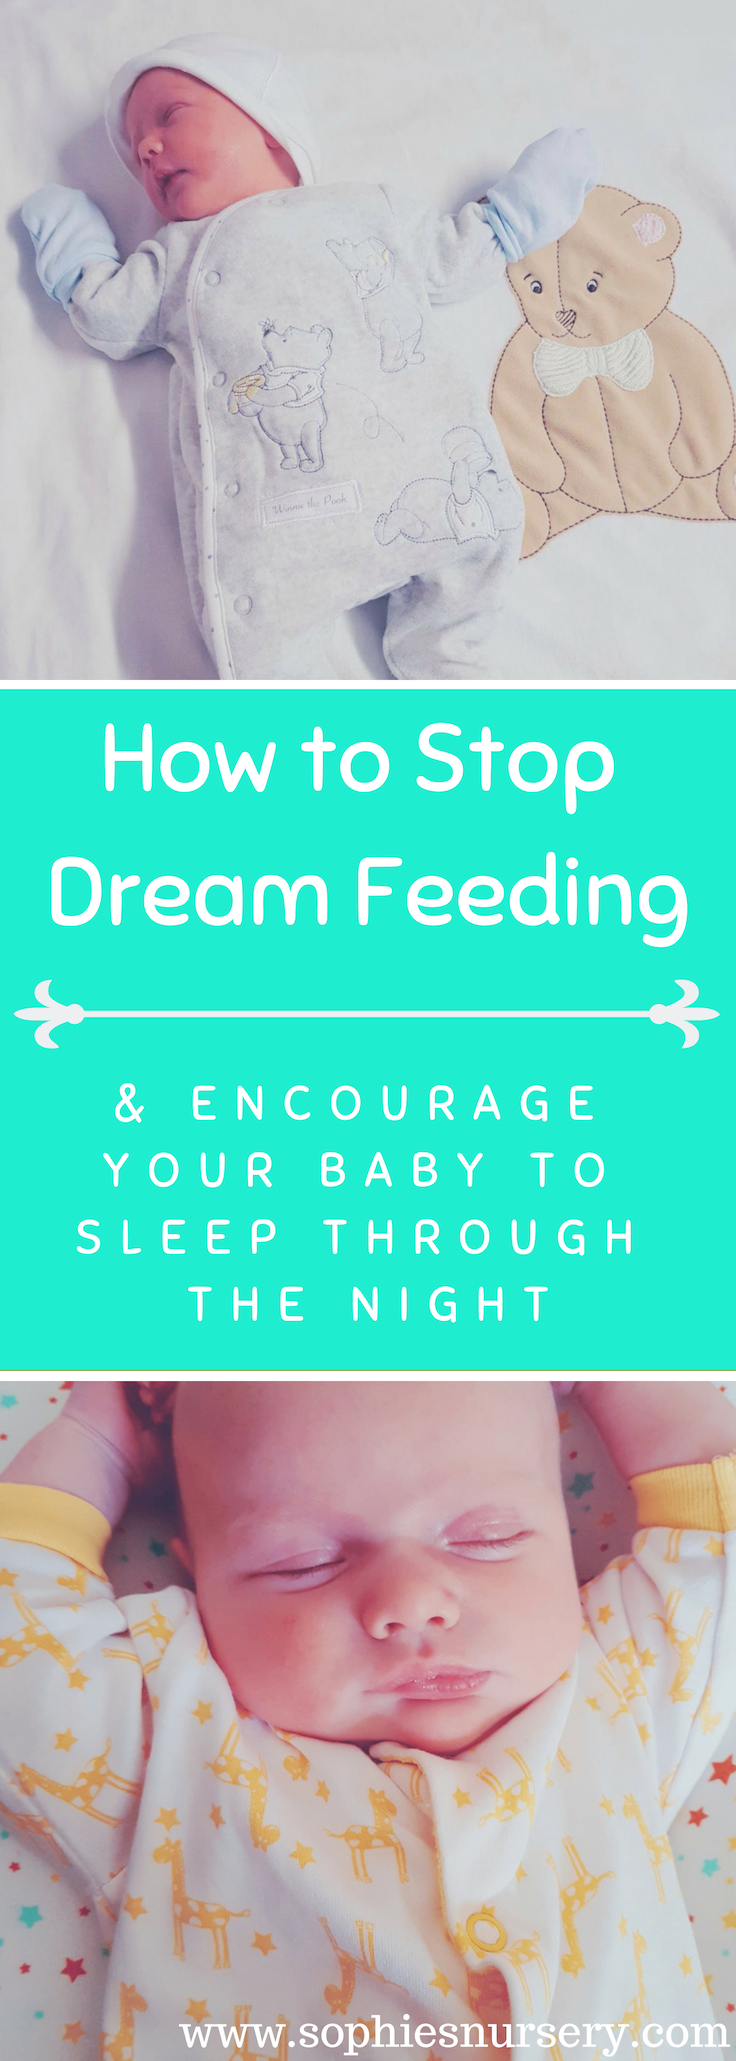 Trying to get your #baby to #sleep through the night? Here are a sleep experts top tips on how to stop dream feeding your baby so you all get a night's sleep!  #feeding #parenting #momlife